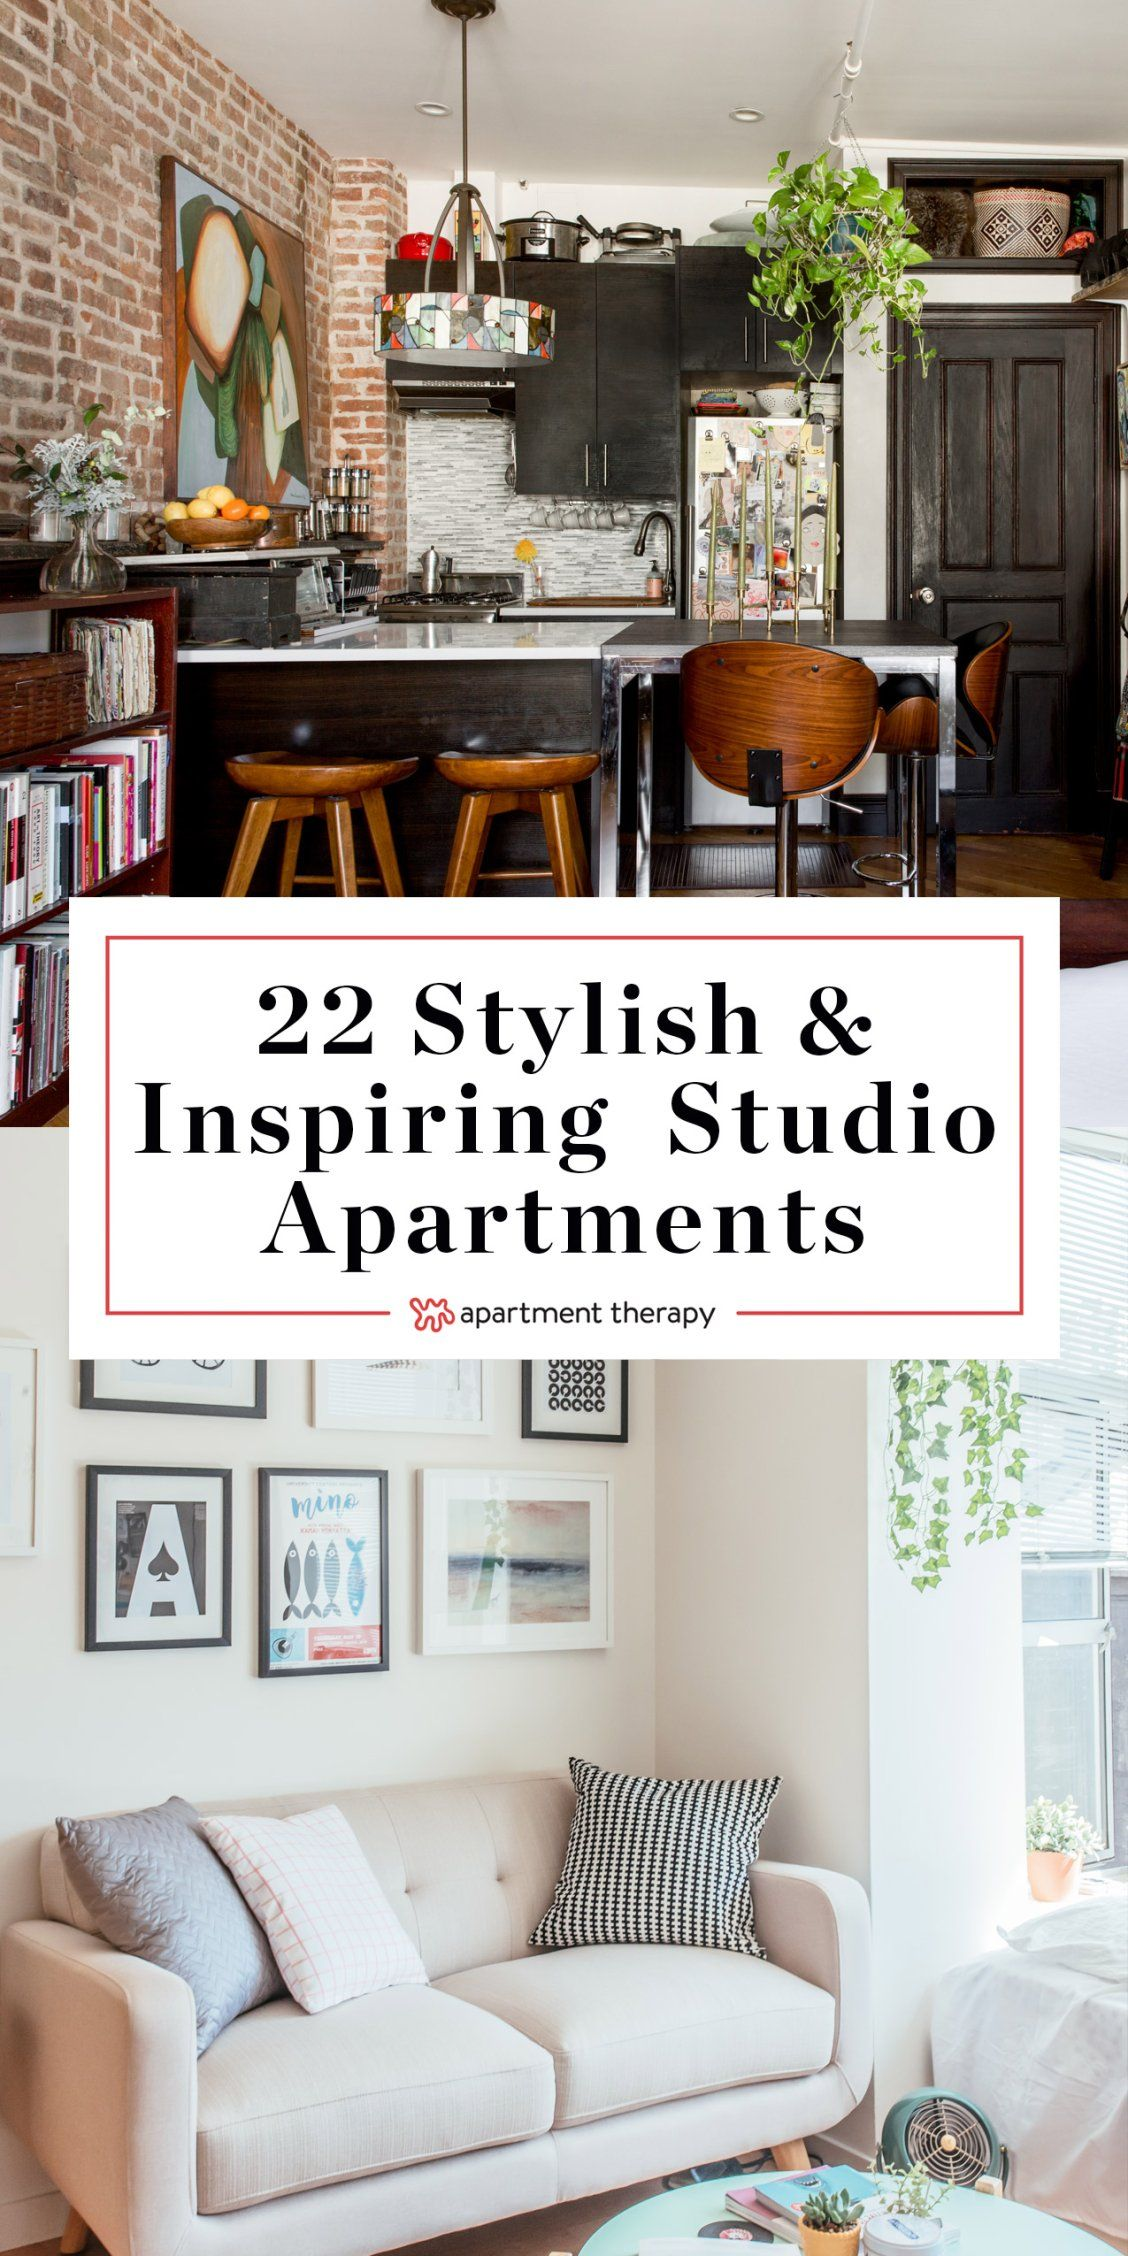 22 Of The Most Stylish Inspiring Studio Apartments Need Ideas And Inspiration For Living In Small Es Like Studios Or Even Rvs Campers Vans